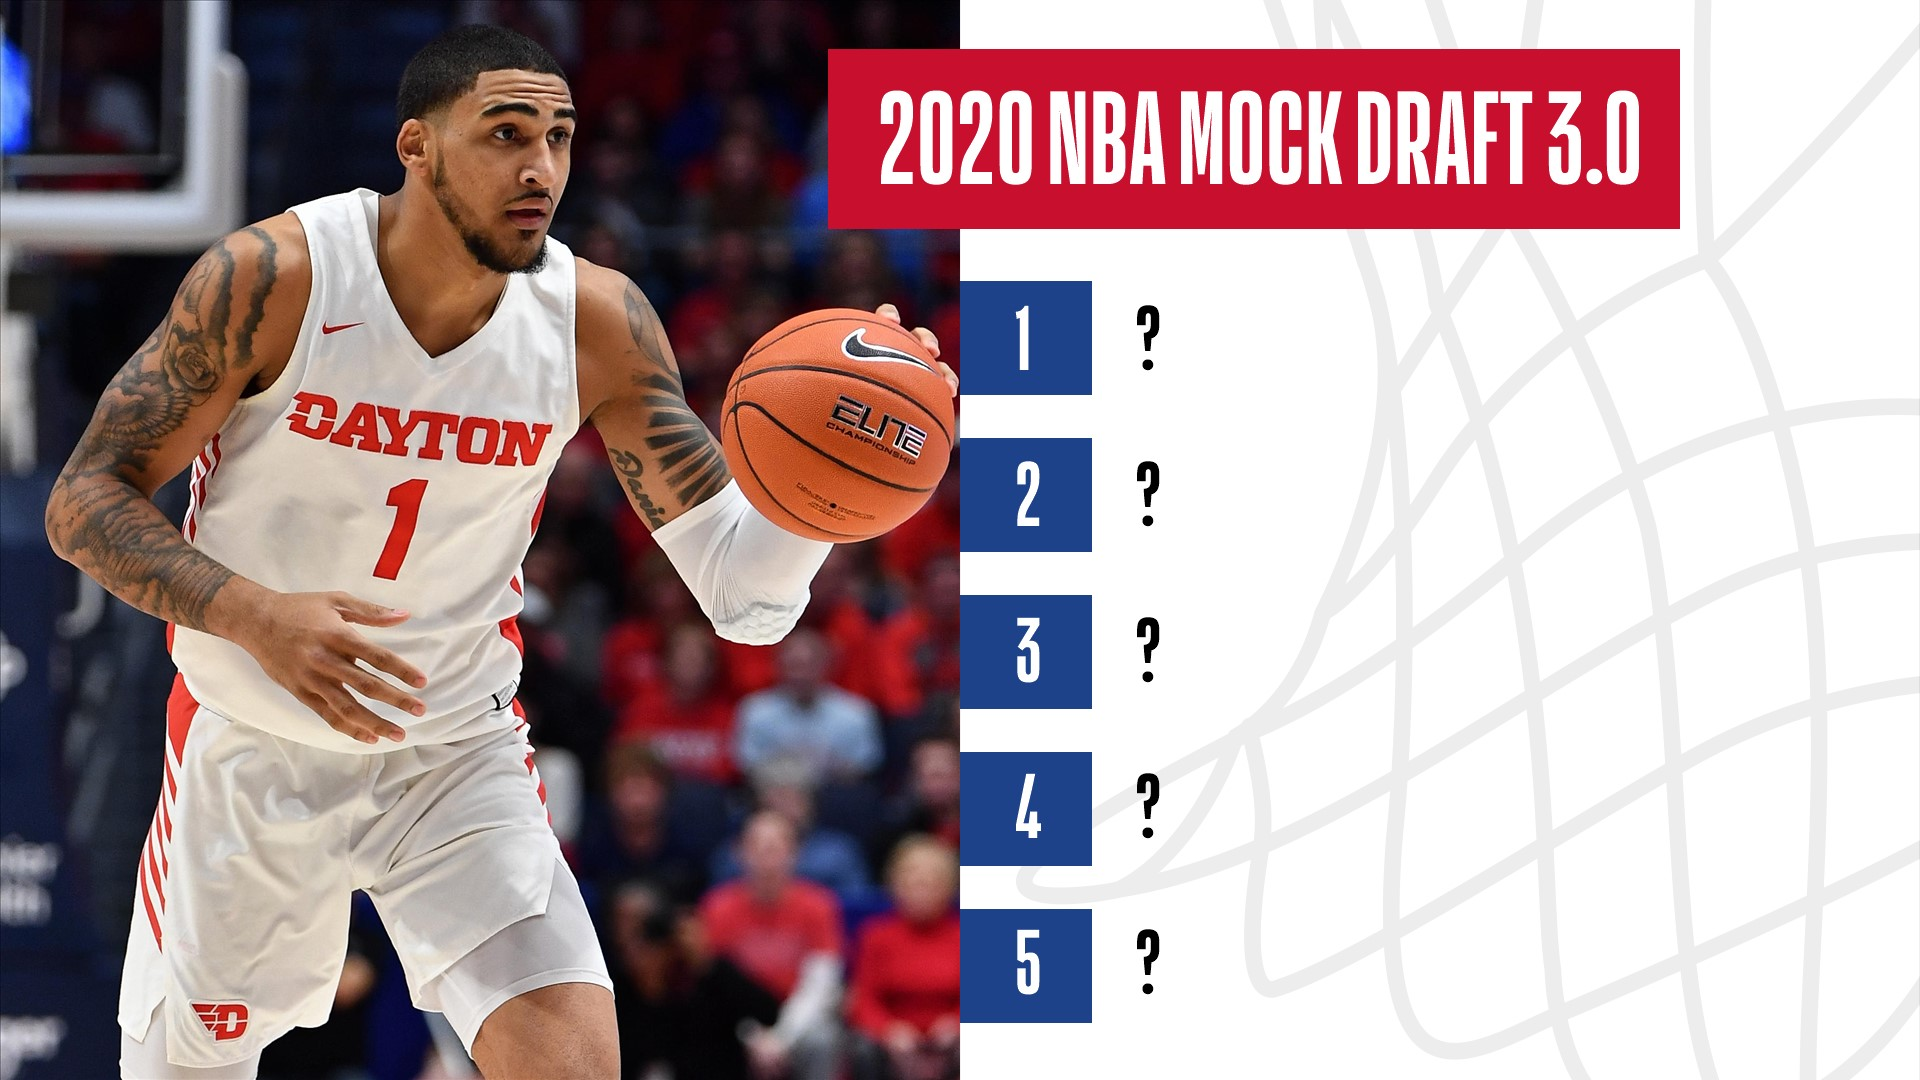 2020 NBA Mock Draft 3.0: Which players moved up and down in the top-10?